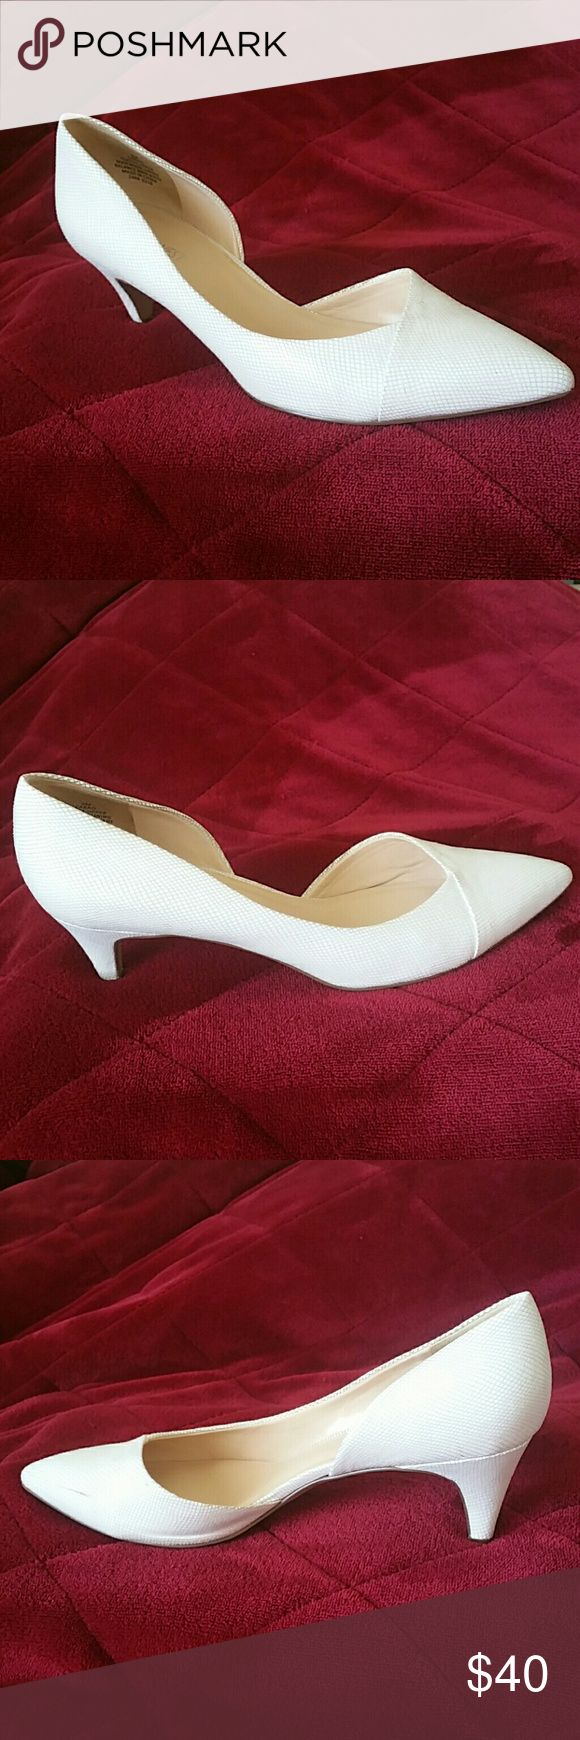 White Nine West heels Worn twice with a few small scuffs (pictured). Original box included (also pictured). Nine West Shoes Heels